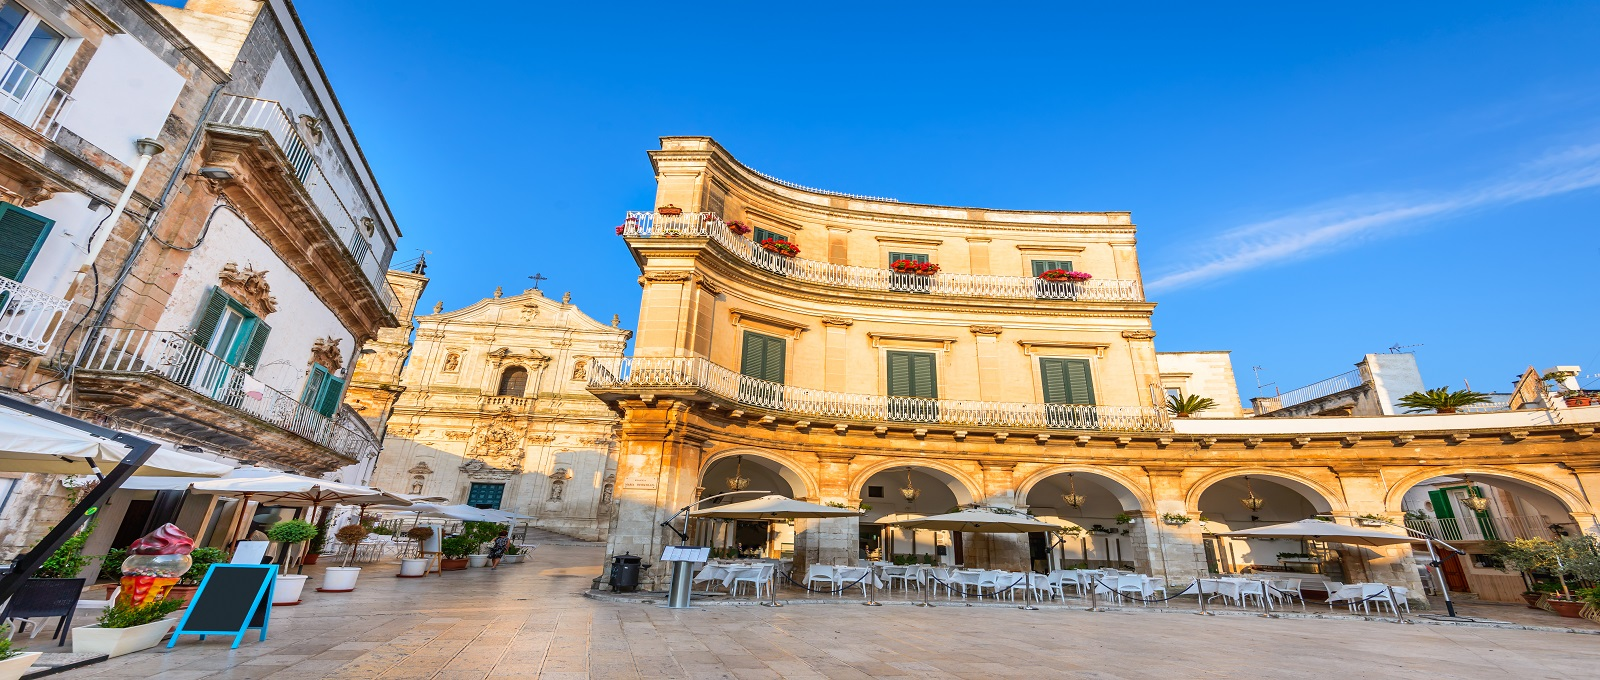 SEPTEMBER IN MARTINA FRANCA … DAYS THAT SMELL OF SUMMER